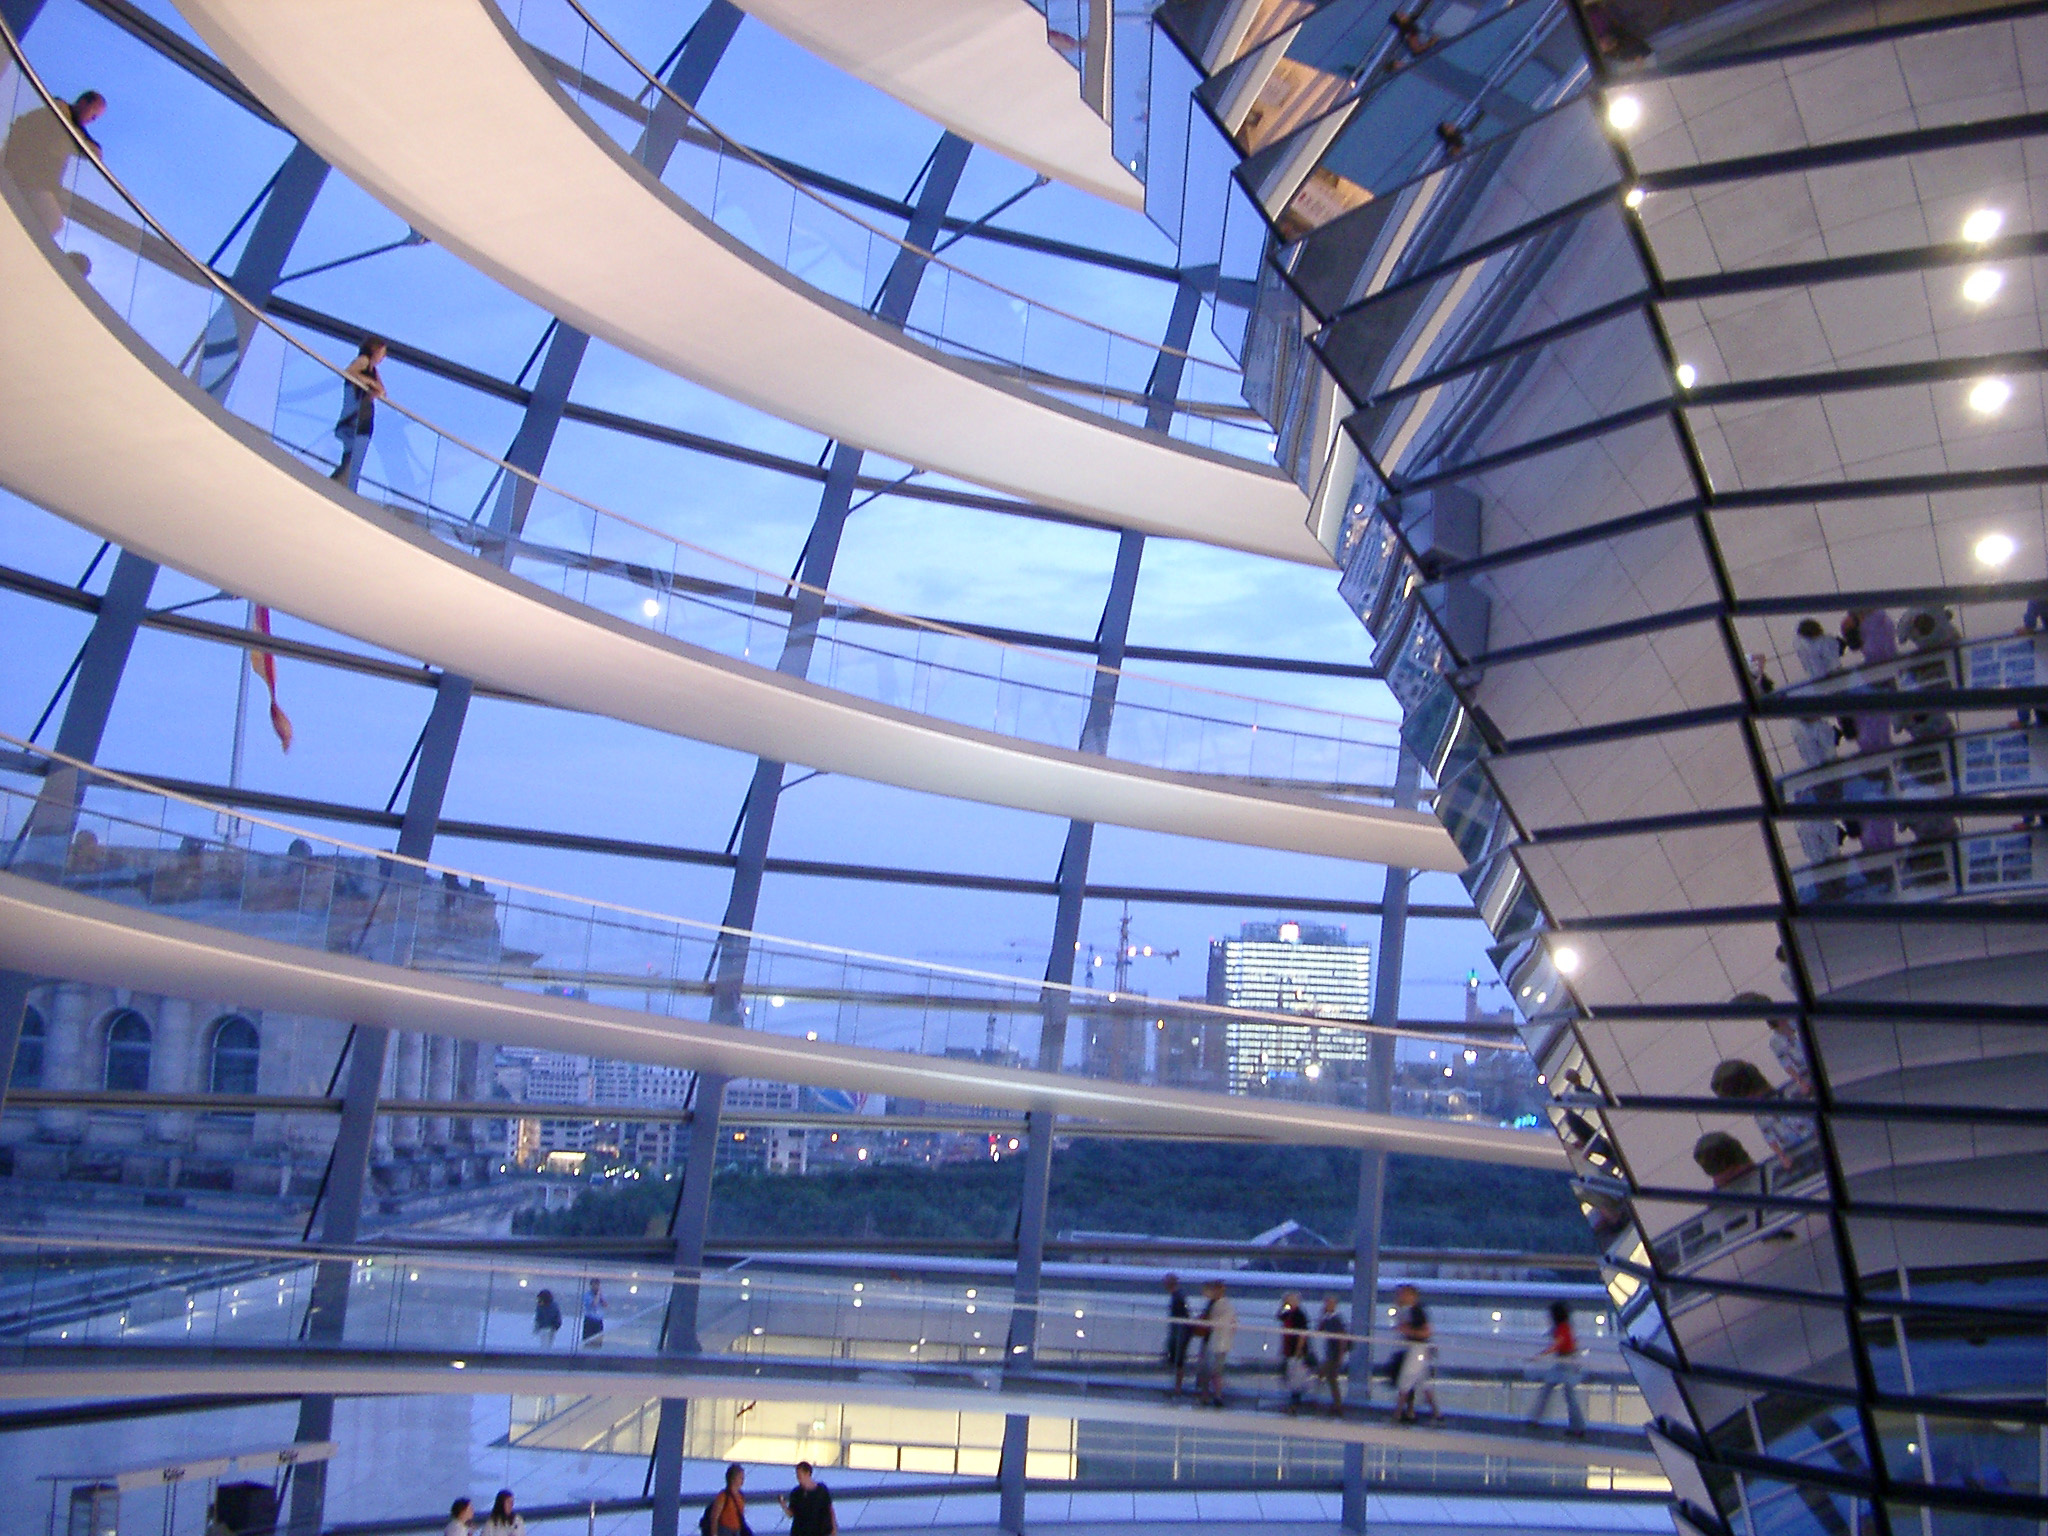 Inside the glass dome on the Reichstag building in Berlin offering a panoramic view of the city with tourists walking under the sunshades